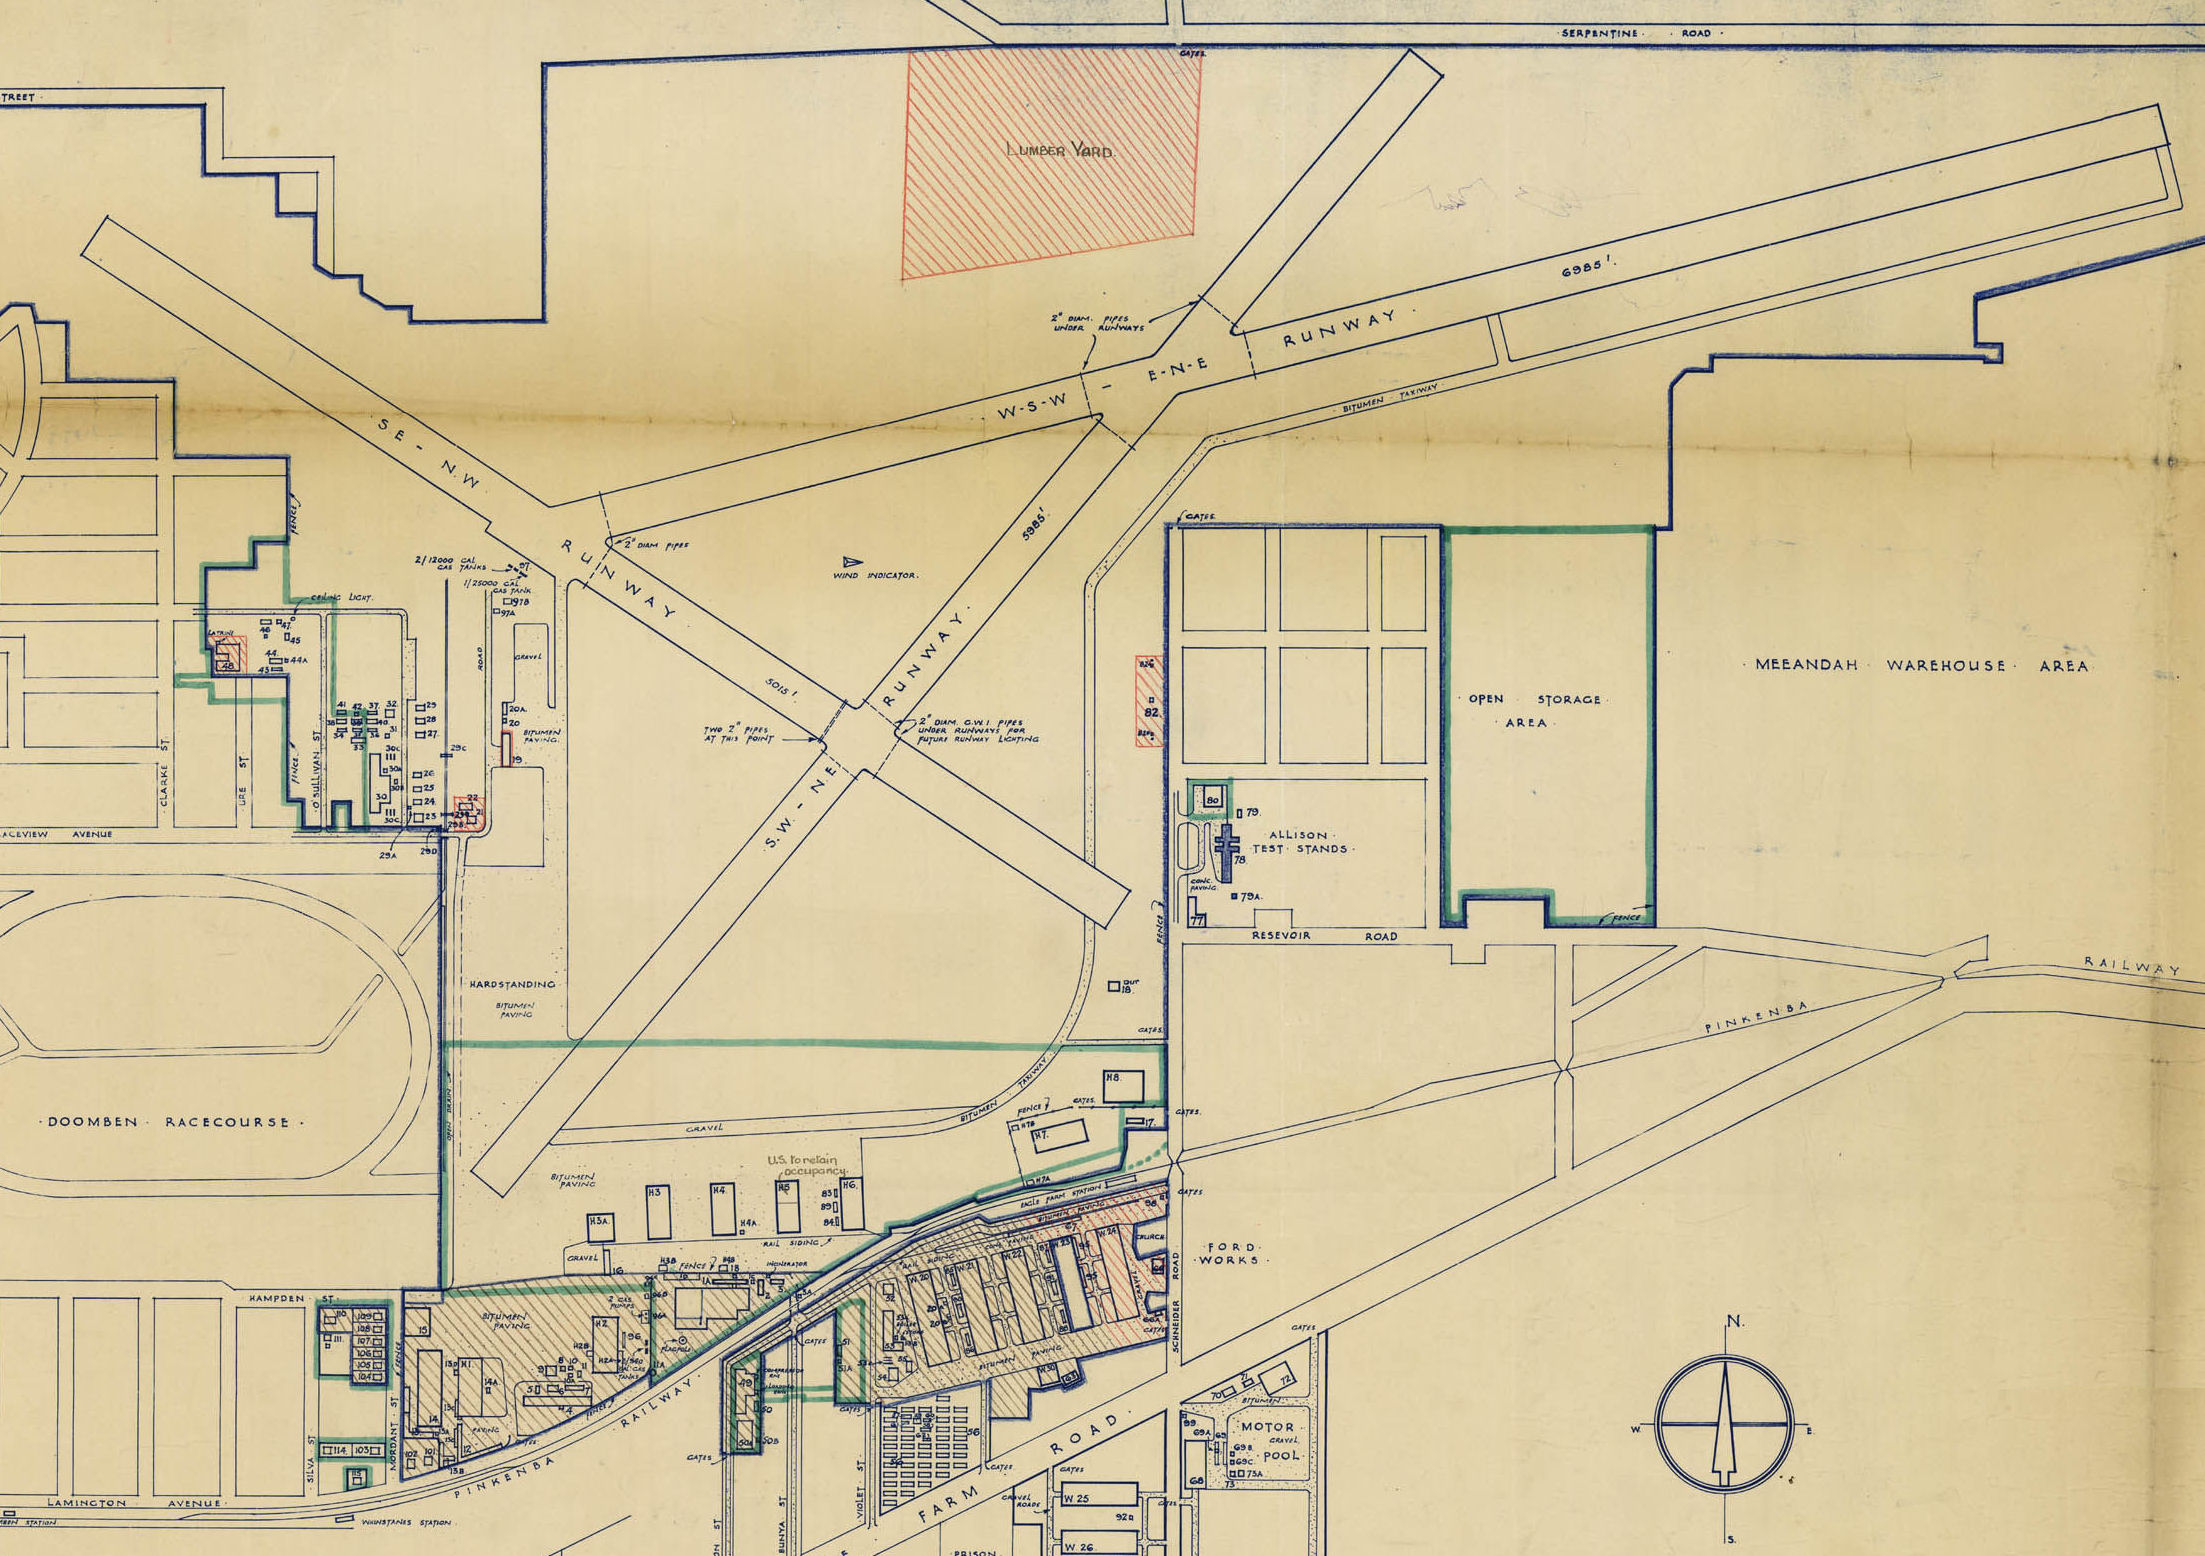 Single dating events brisbane 1